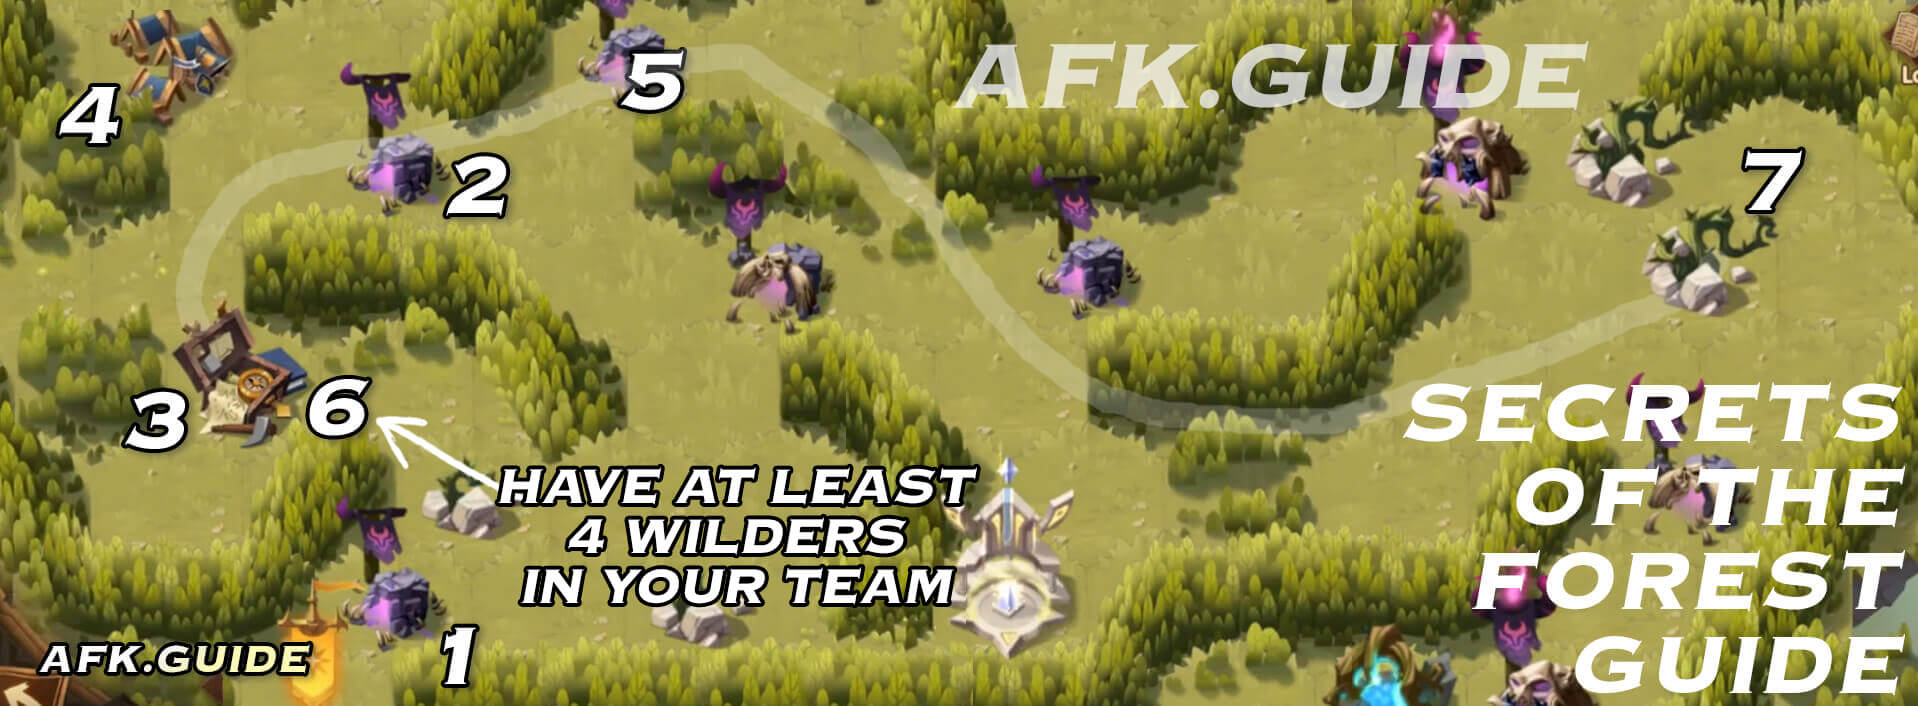 secrets of the forest guide peaks of time afk arena